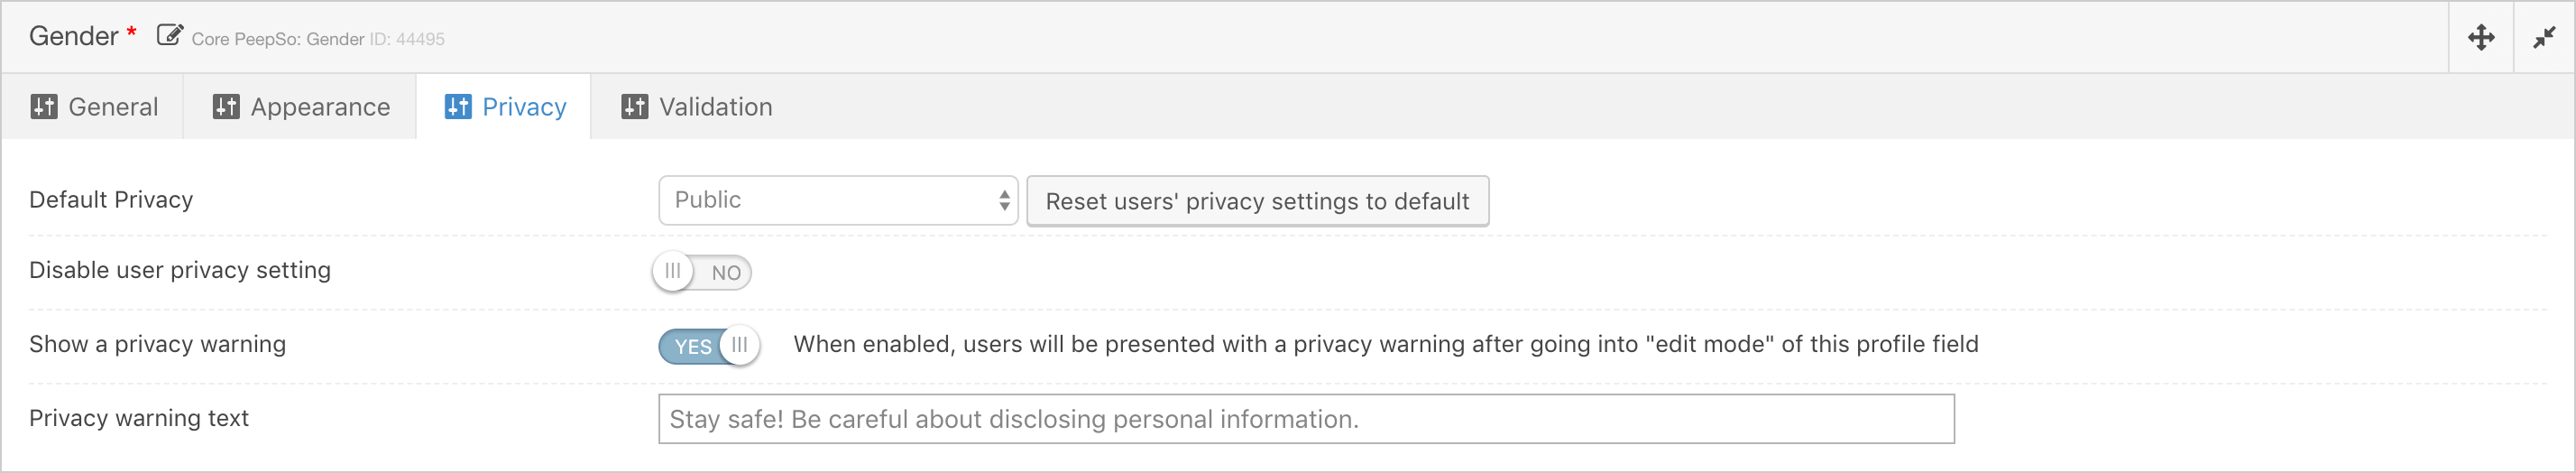 Safety Warnings On Profile Fields - Configuration